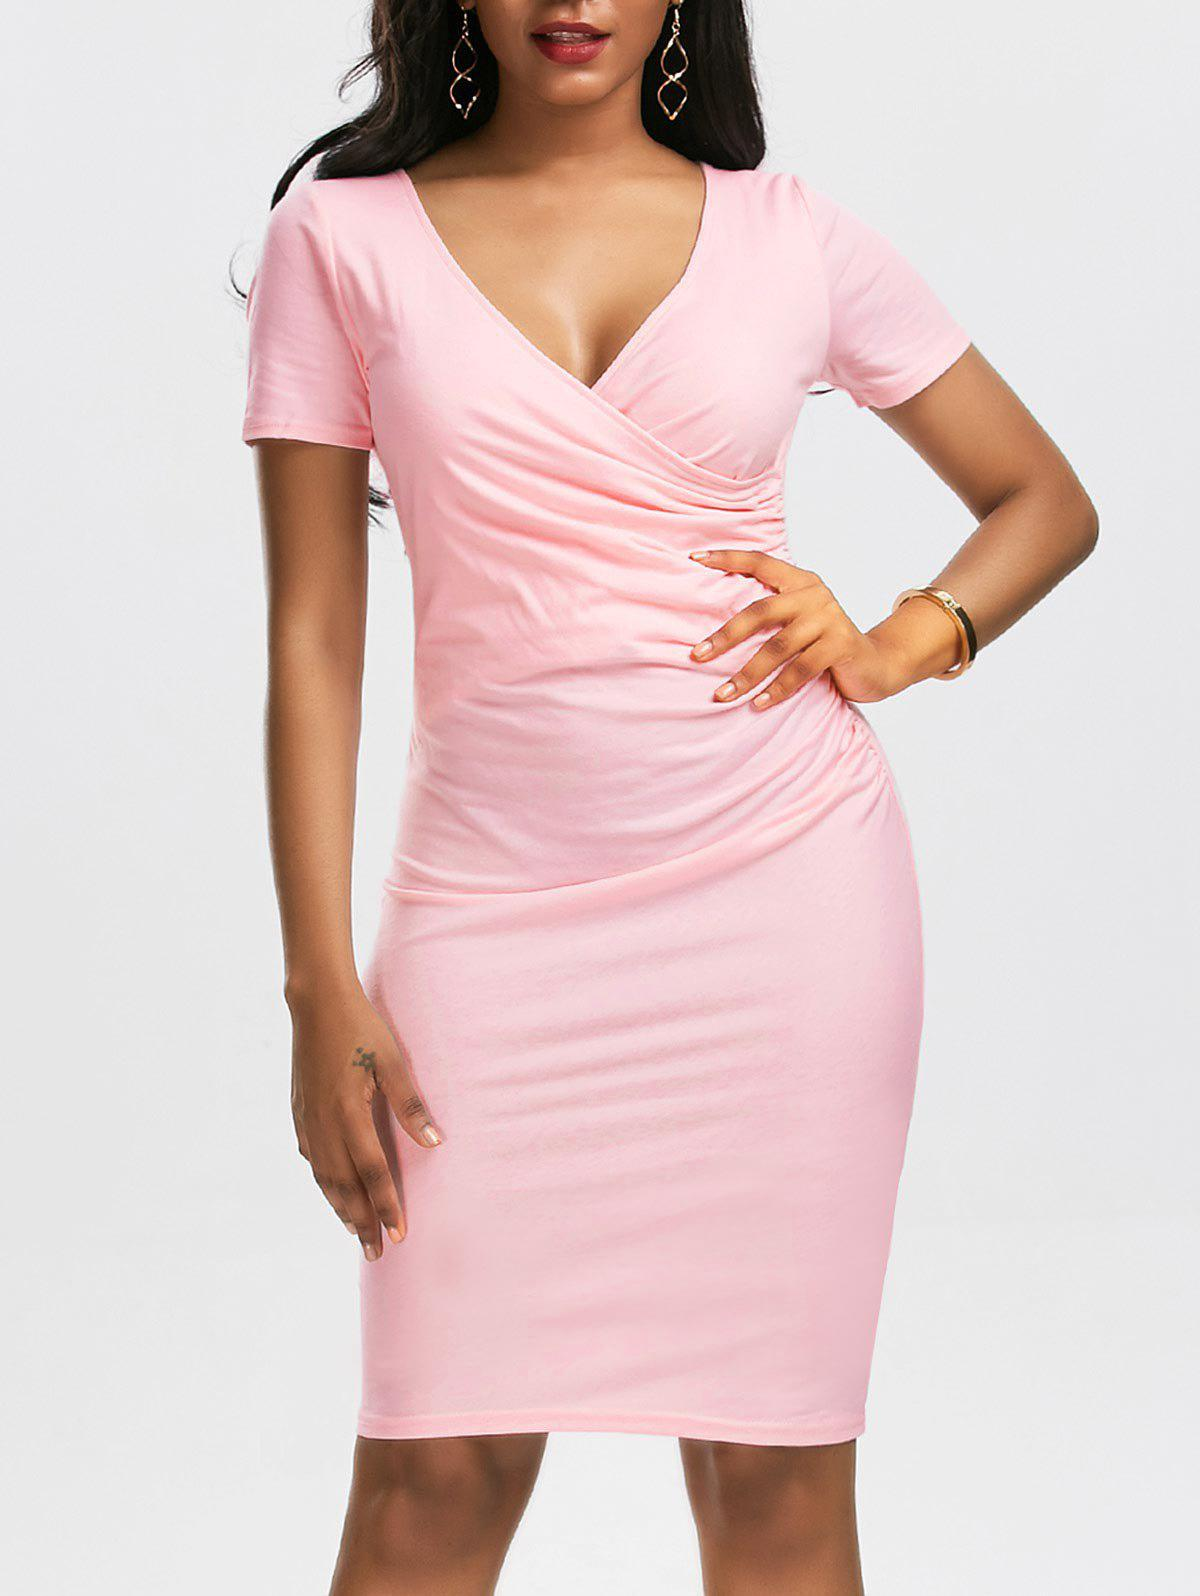 V Neck Surplice Ruched Bodycon Dress ruched v neck surplice dress